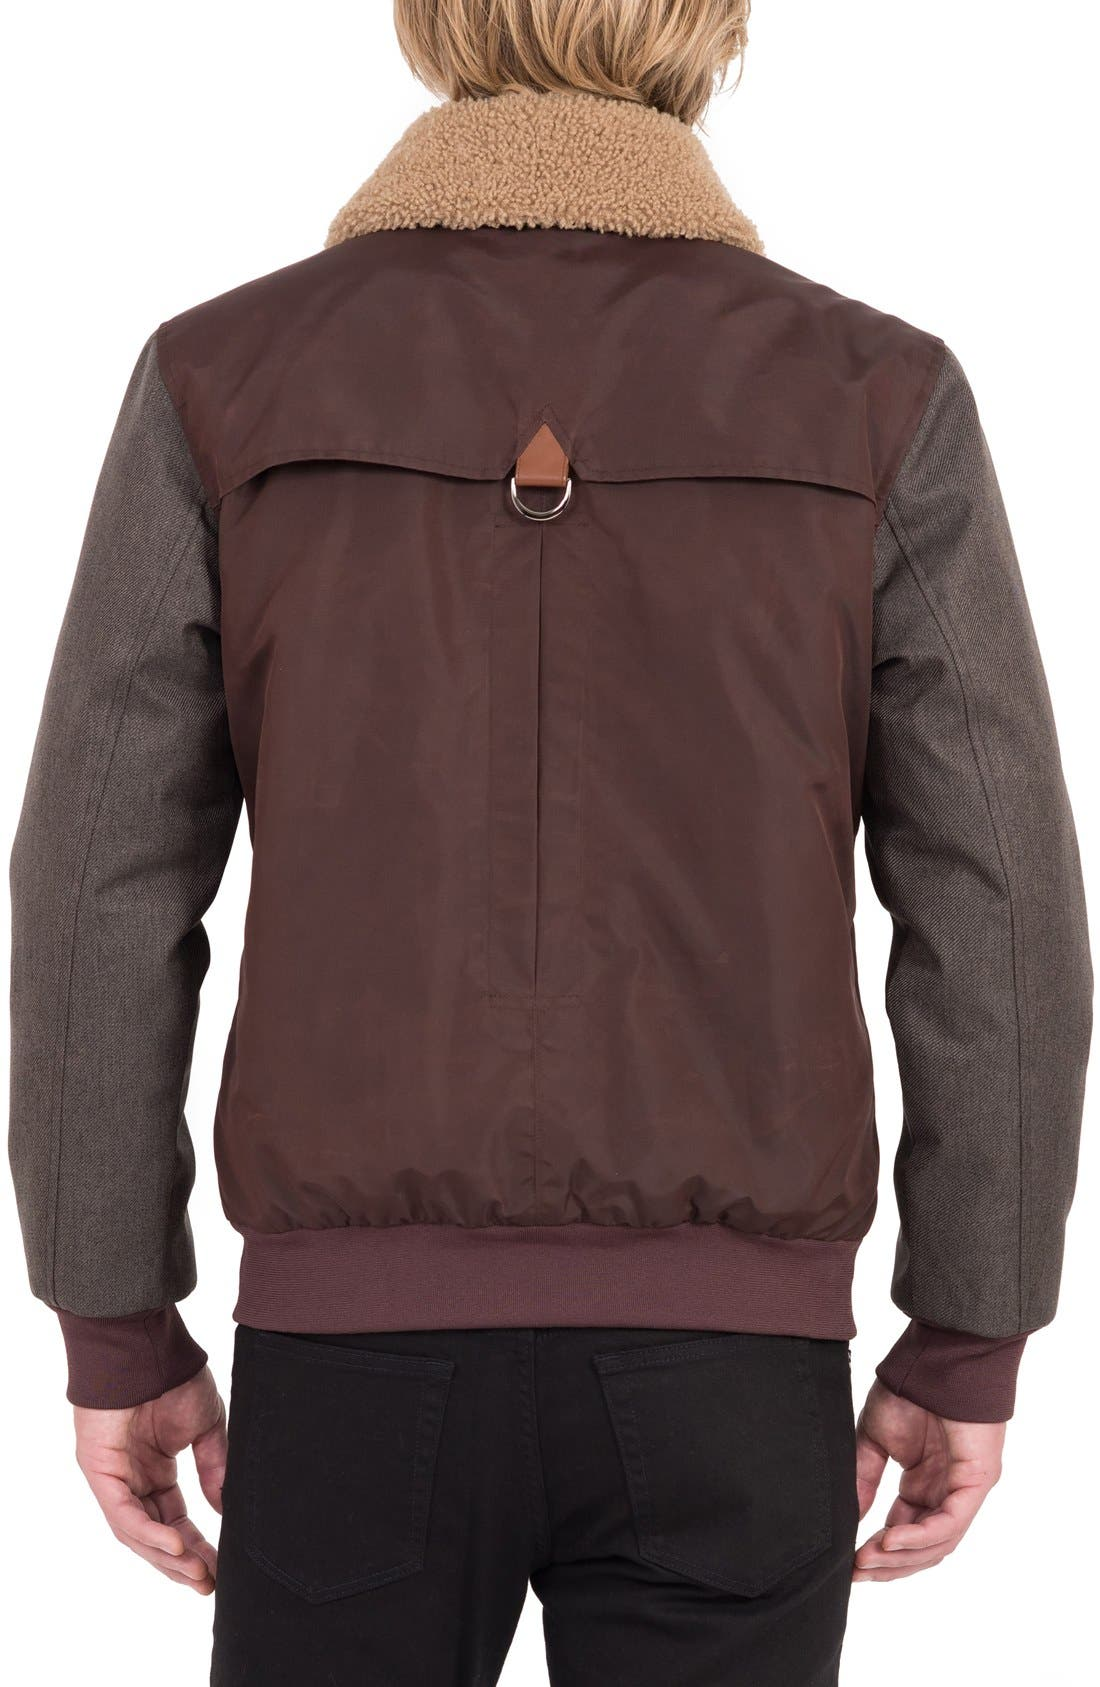 Waxed Nylon Jacket with Faux Shearling Collar,                             Alternate thumbnail 7, color,                             930